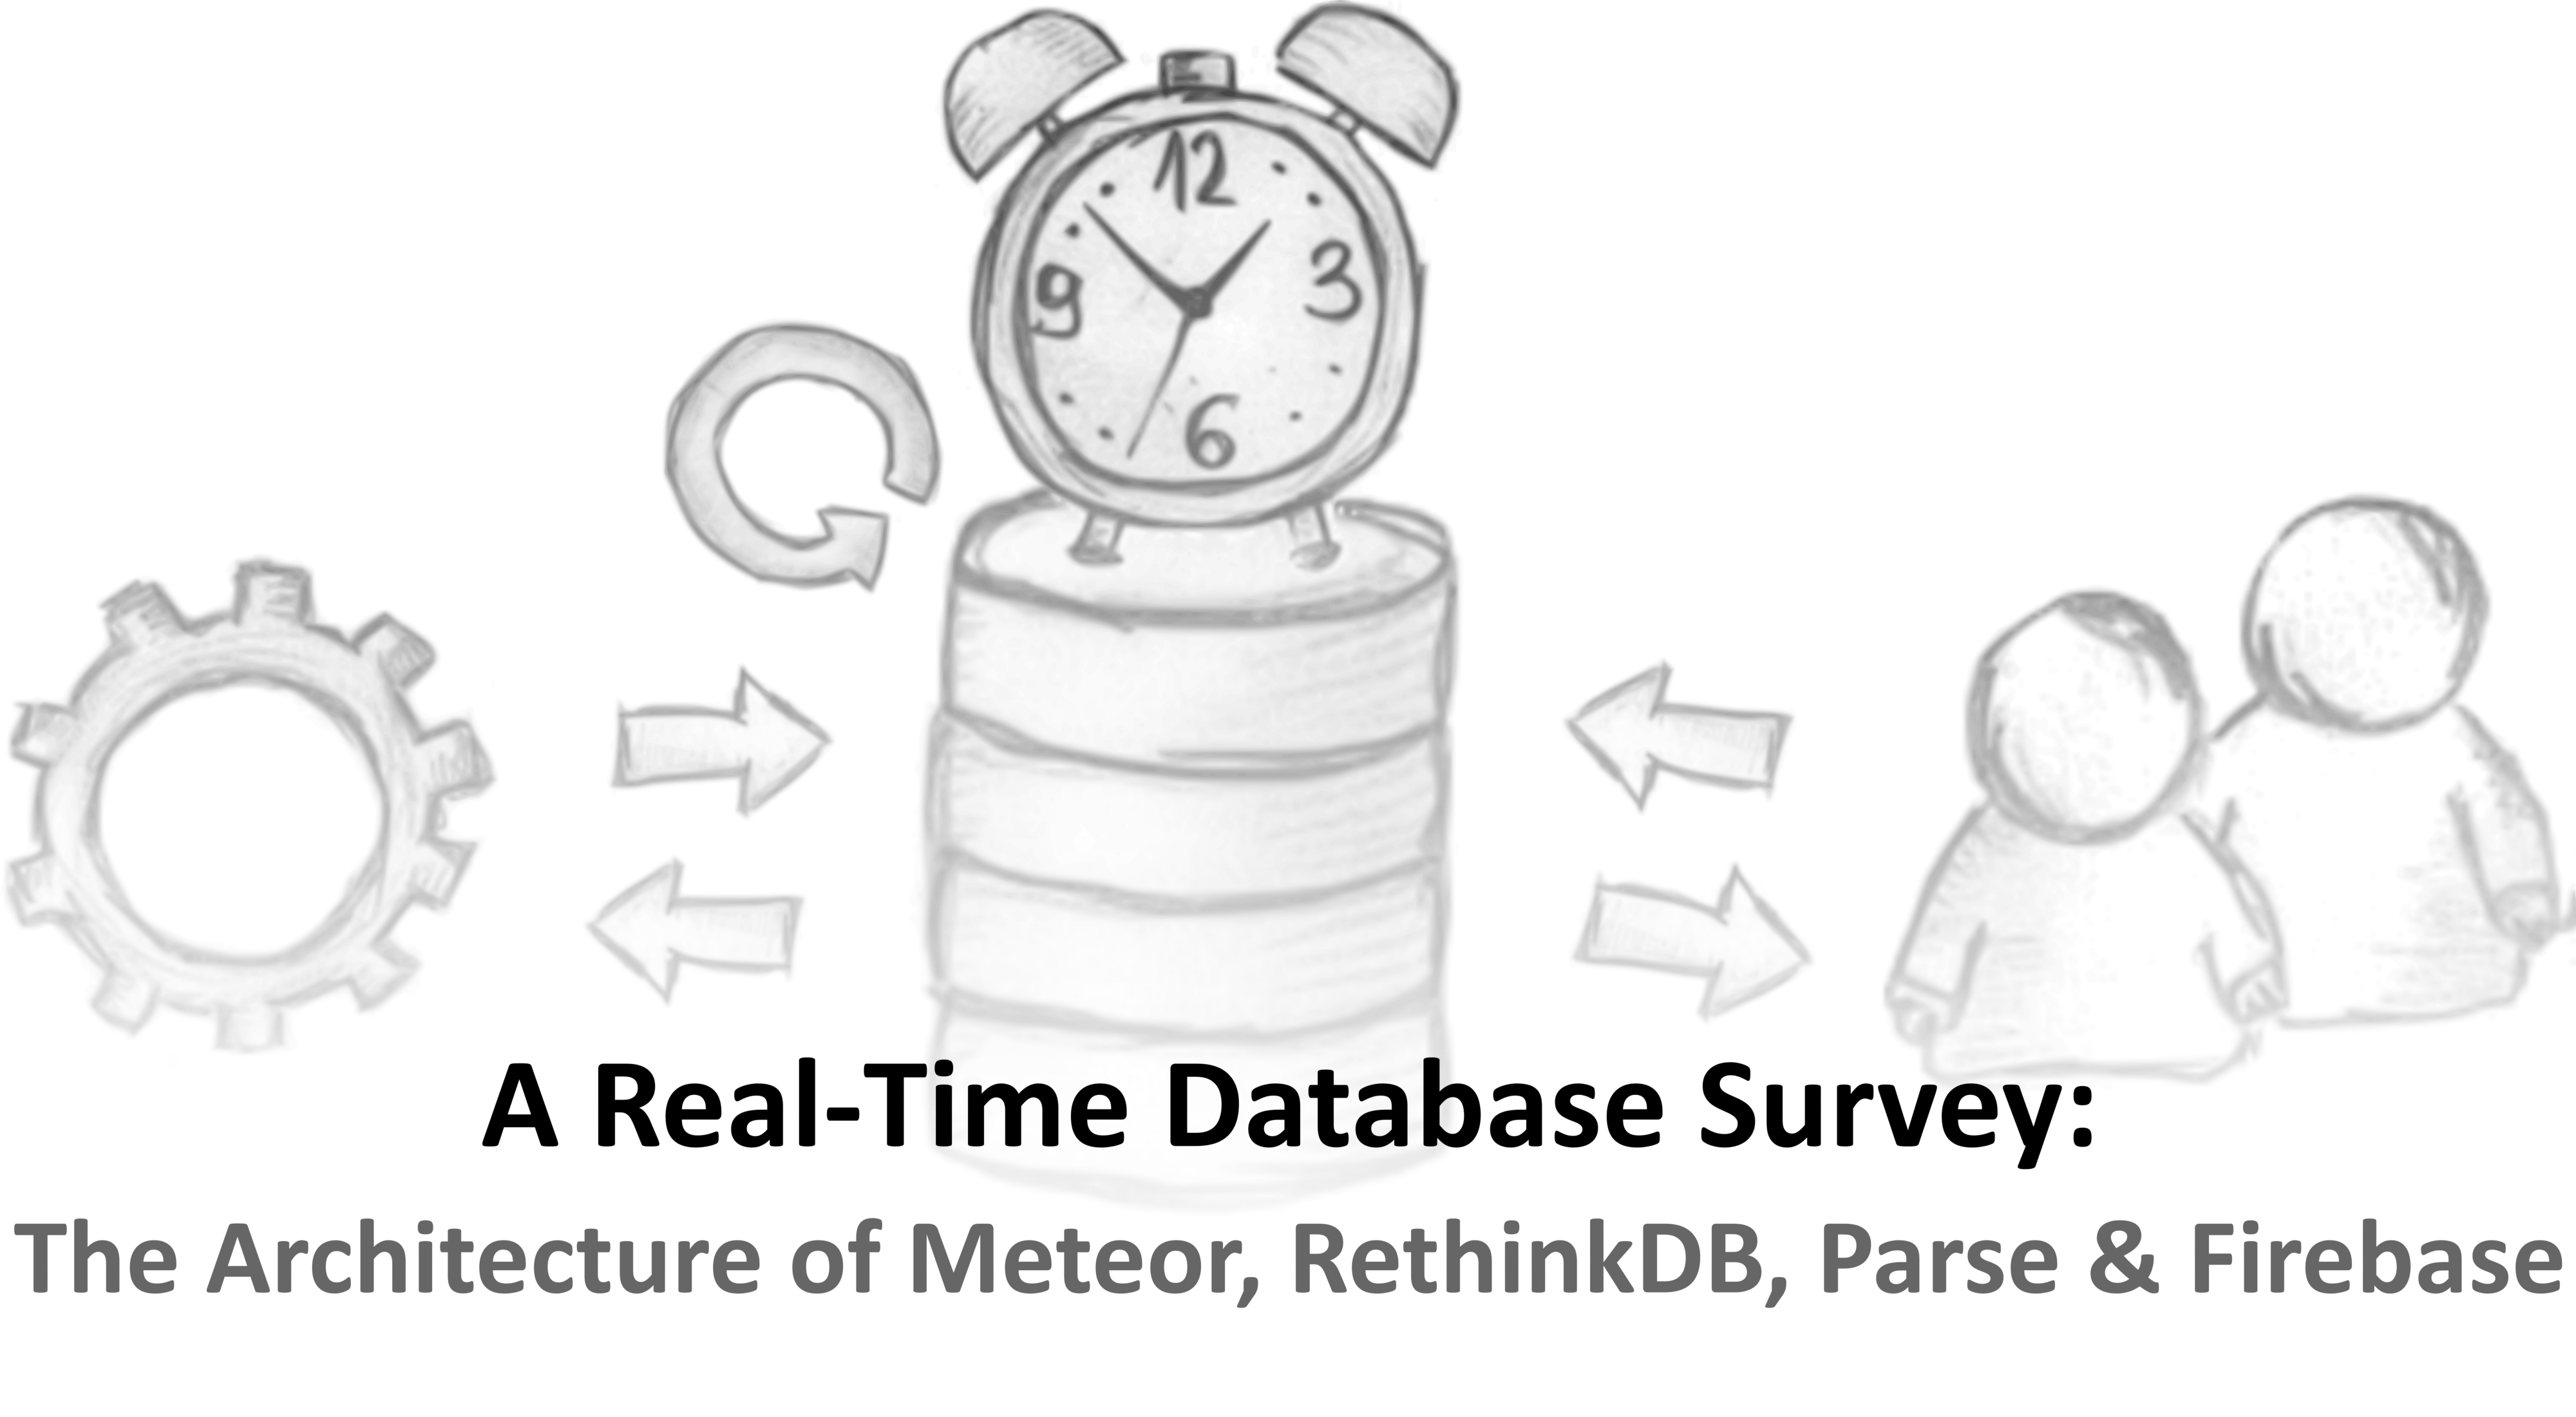 A Real-Time Database Survey: The Architecture of Meteor